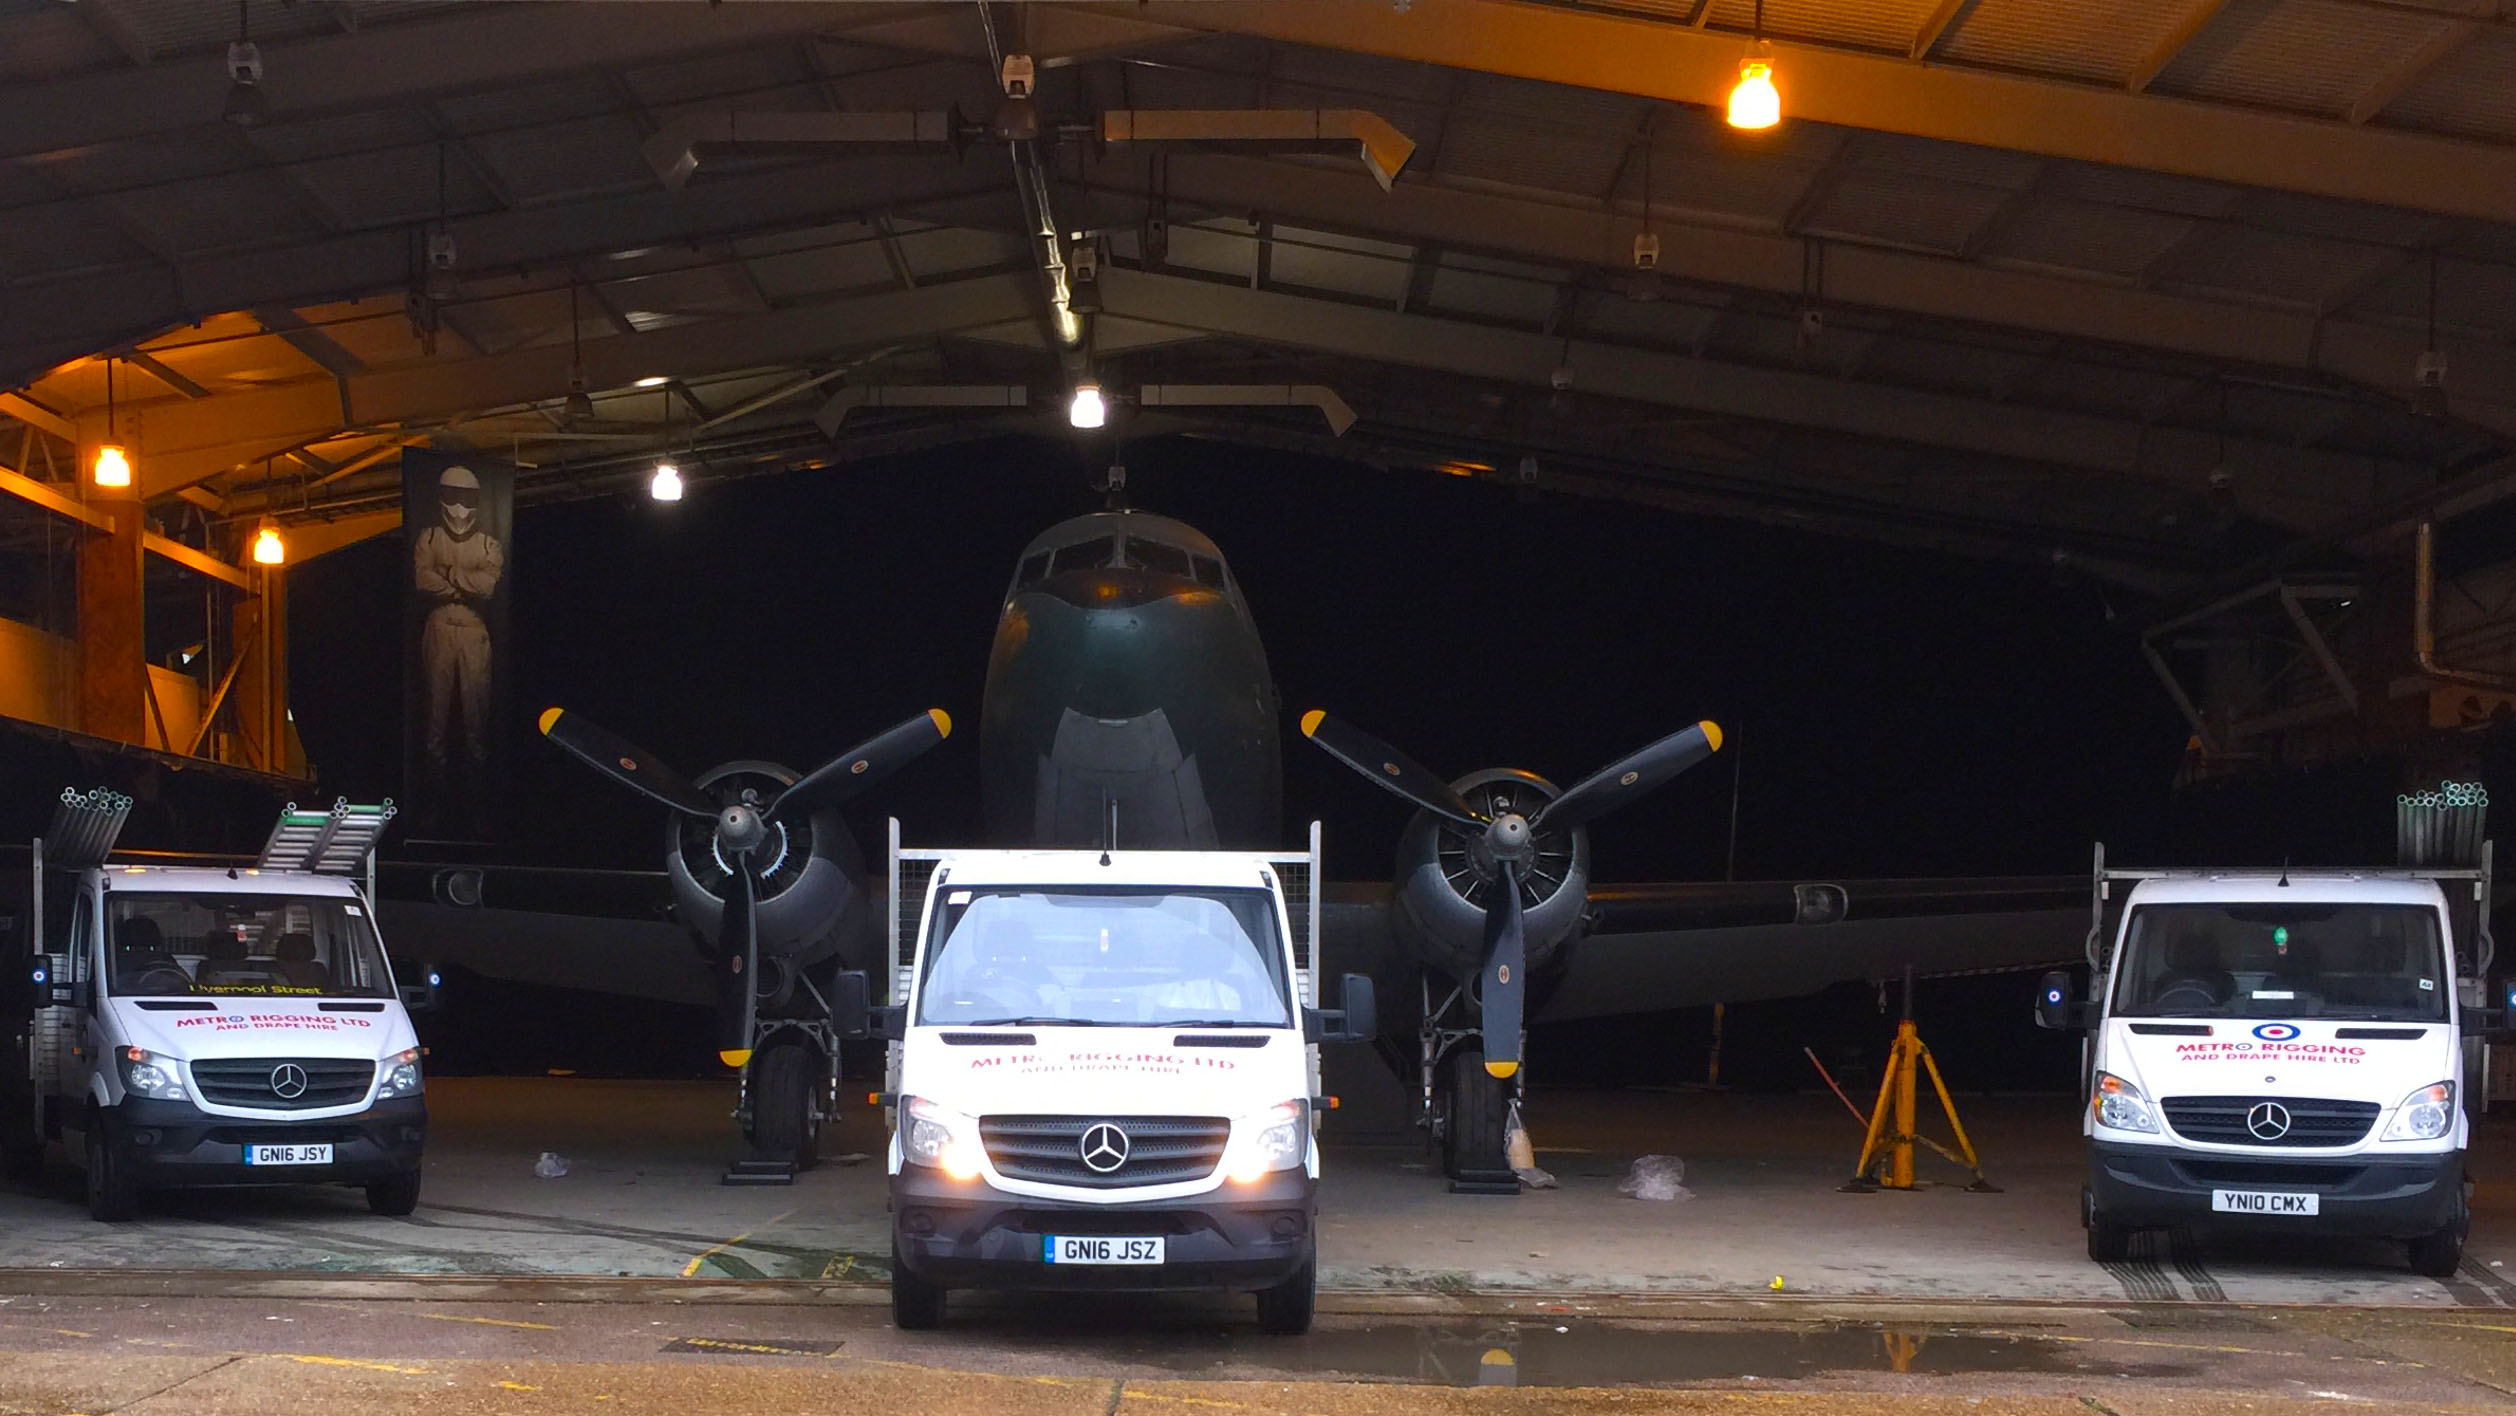 Our transportation vans in a hangar, ready to tow a jet plane to film.